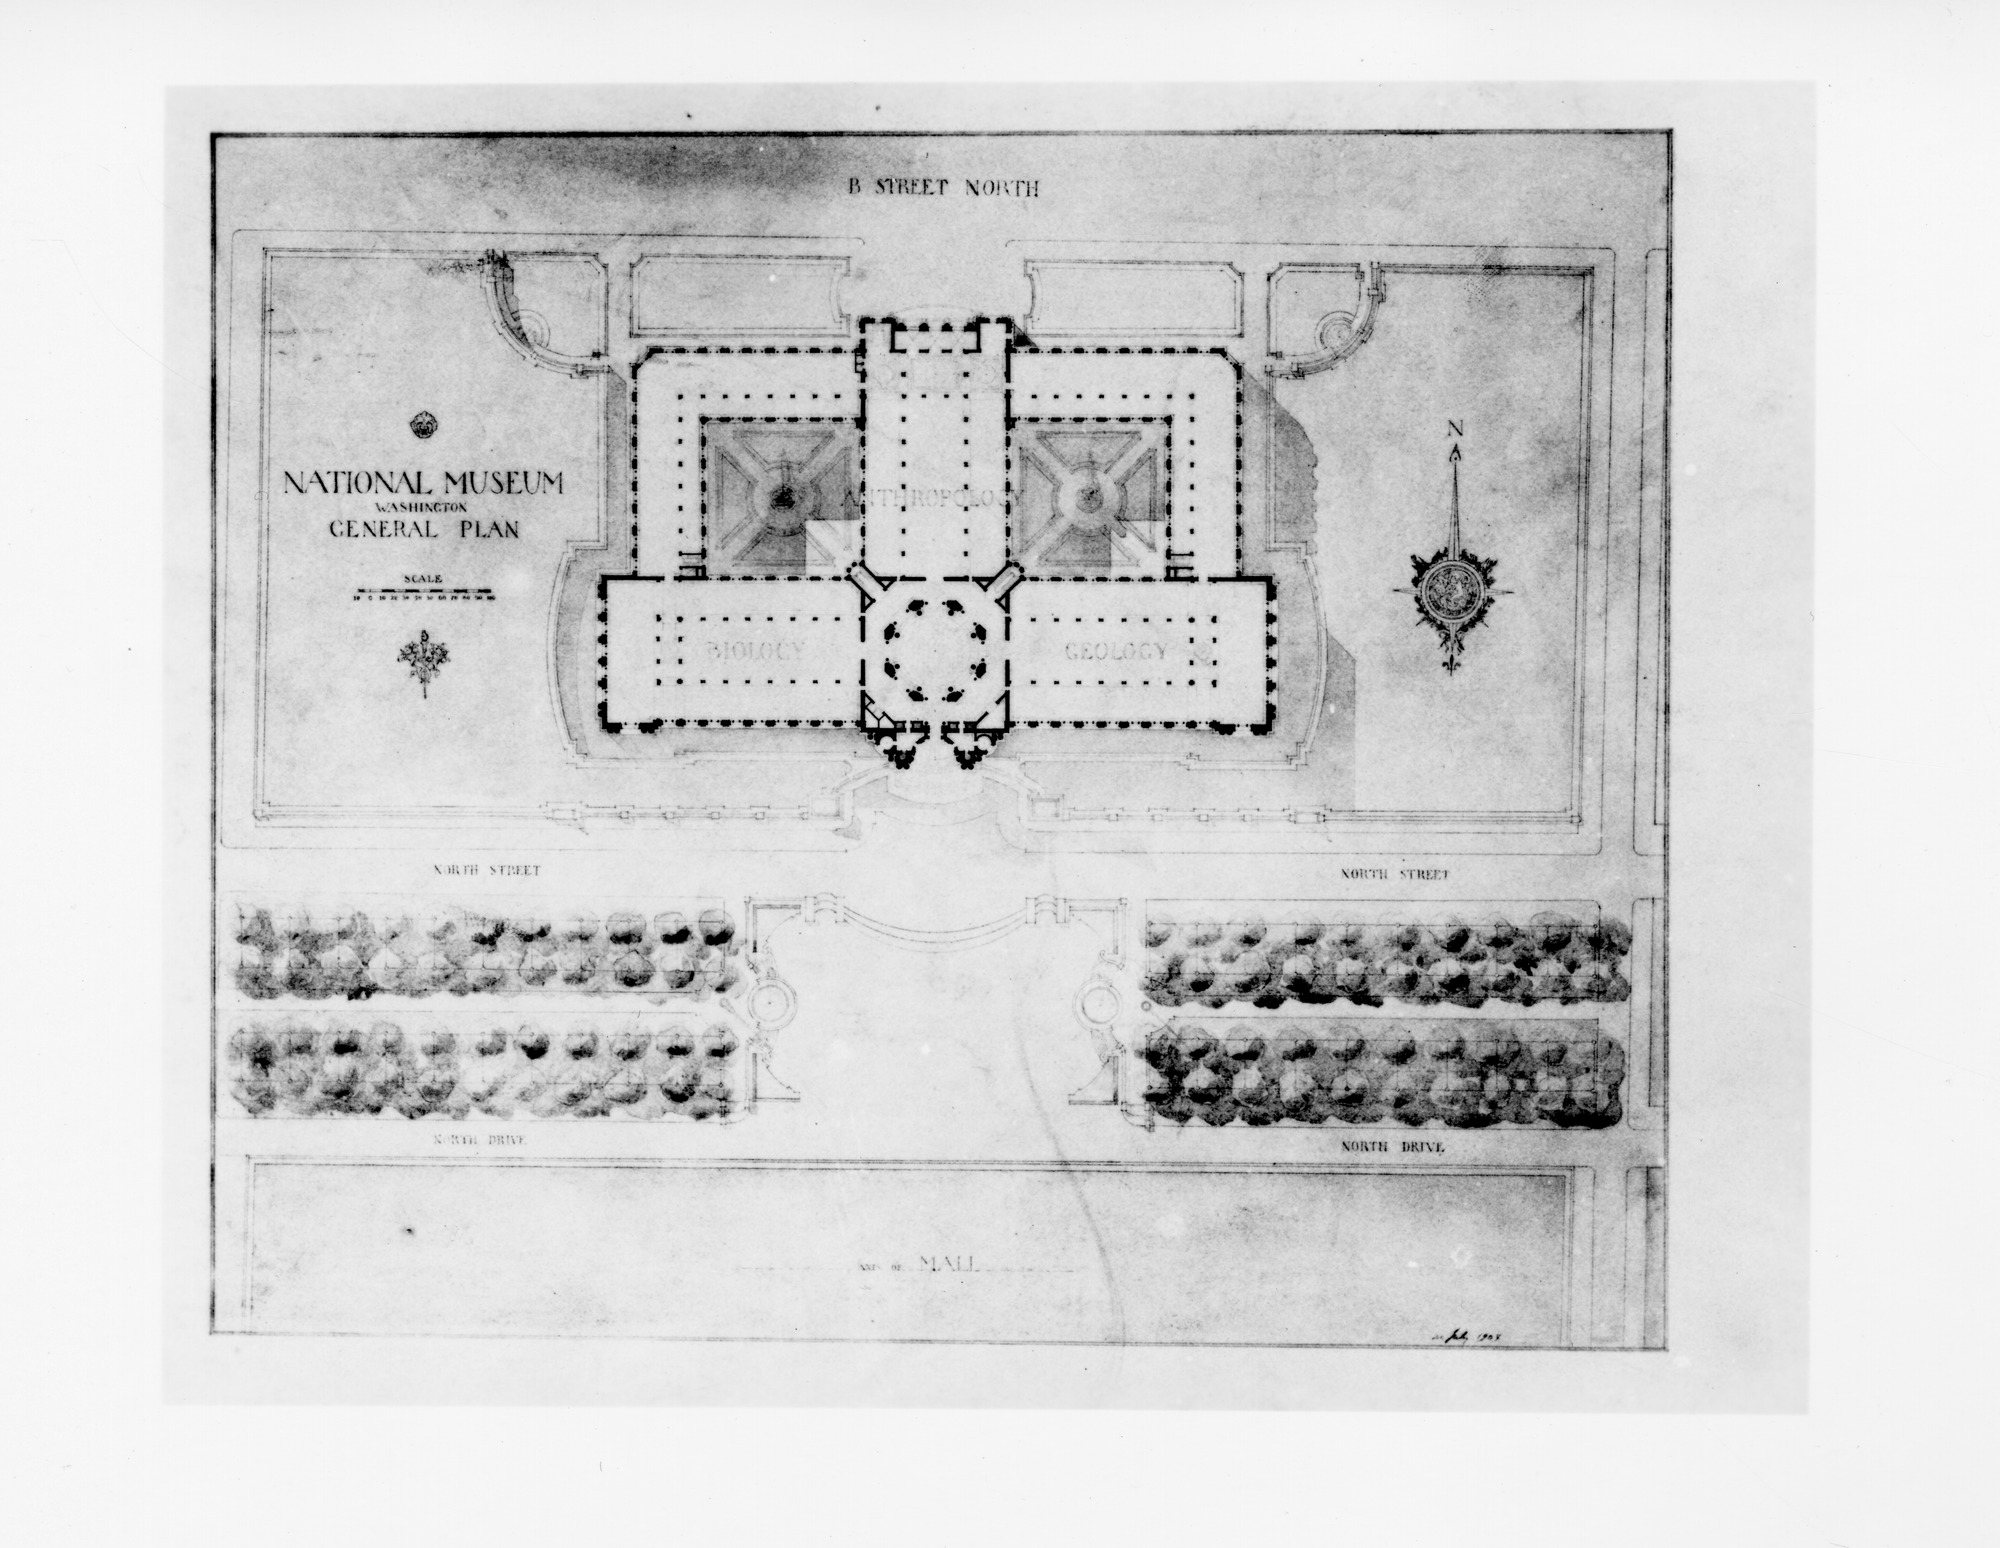 General Building Plan for the National Museum of Natural History